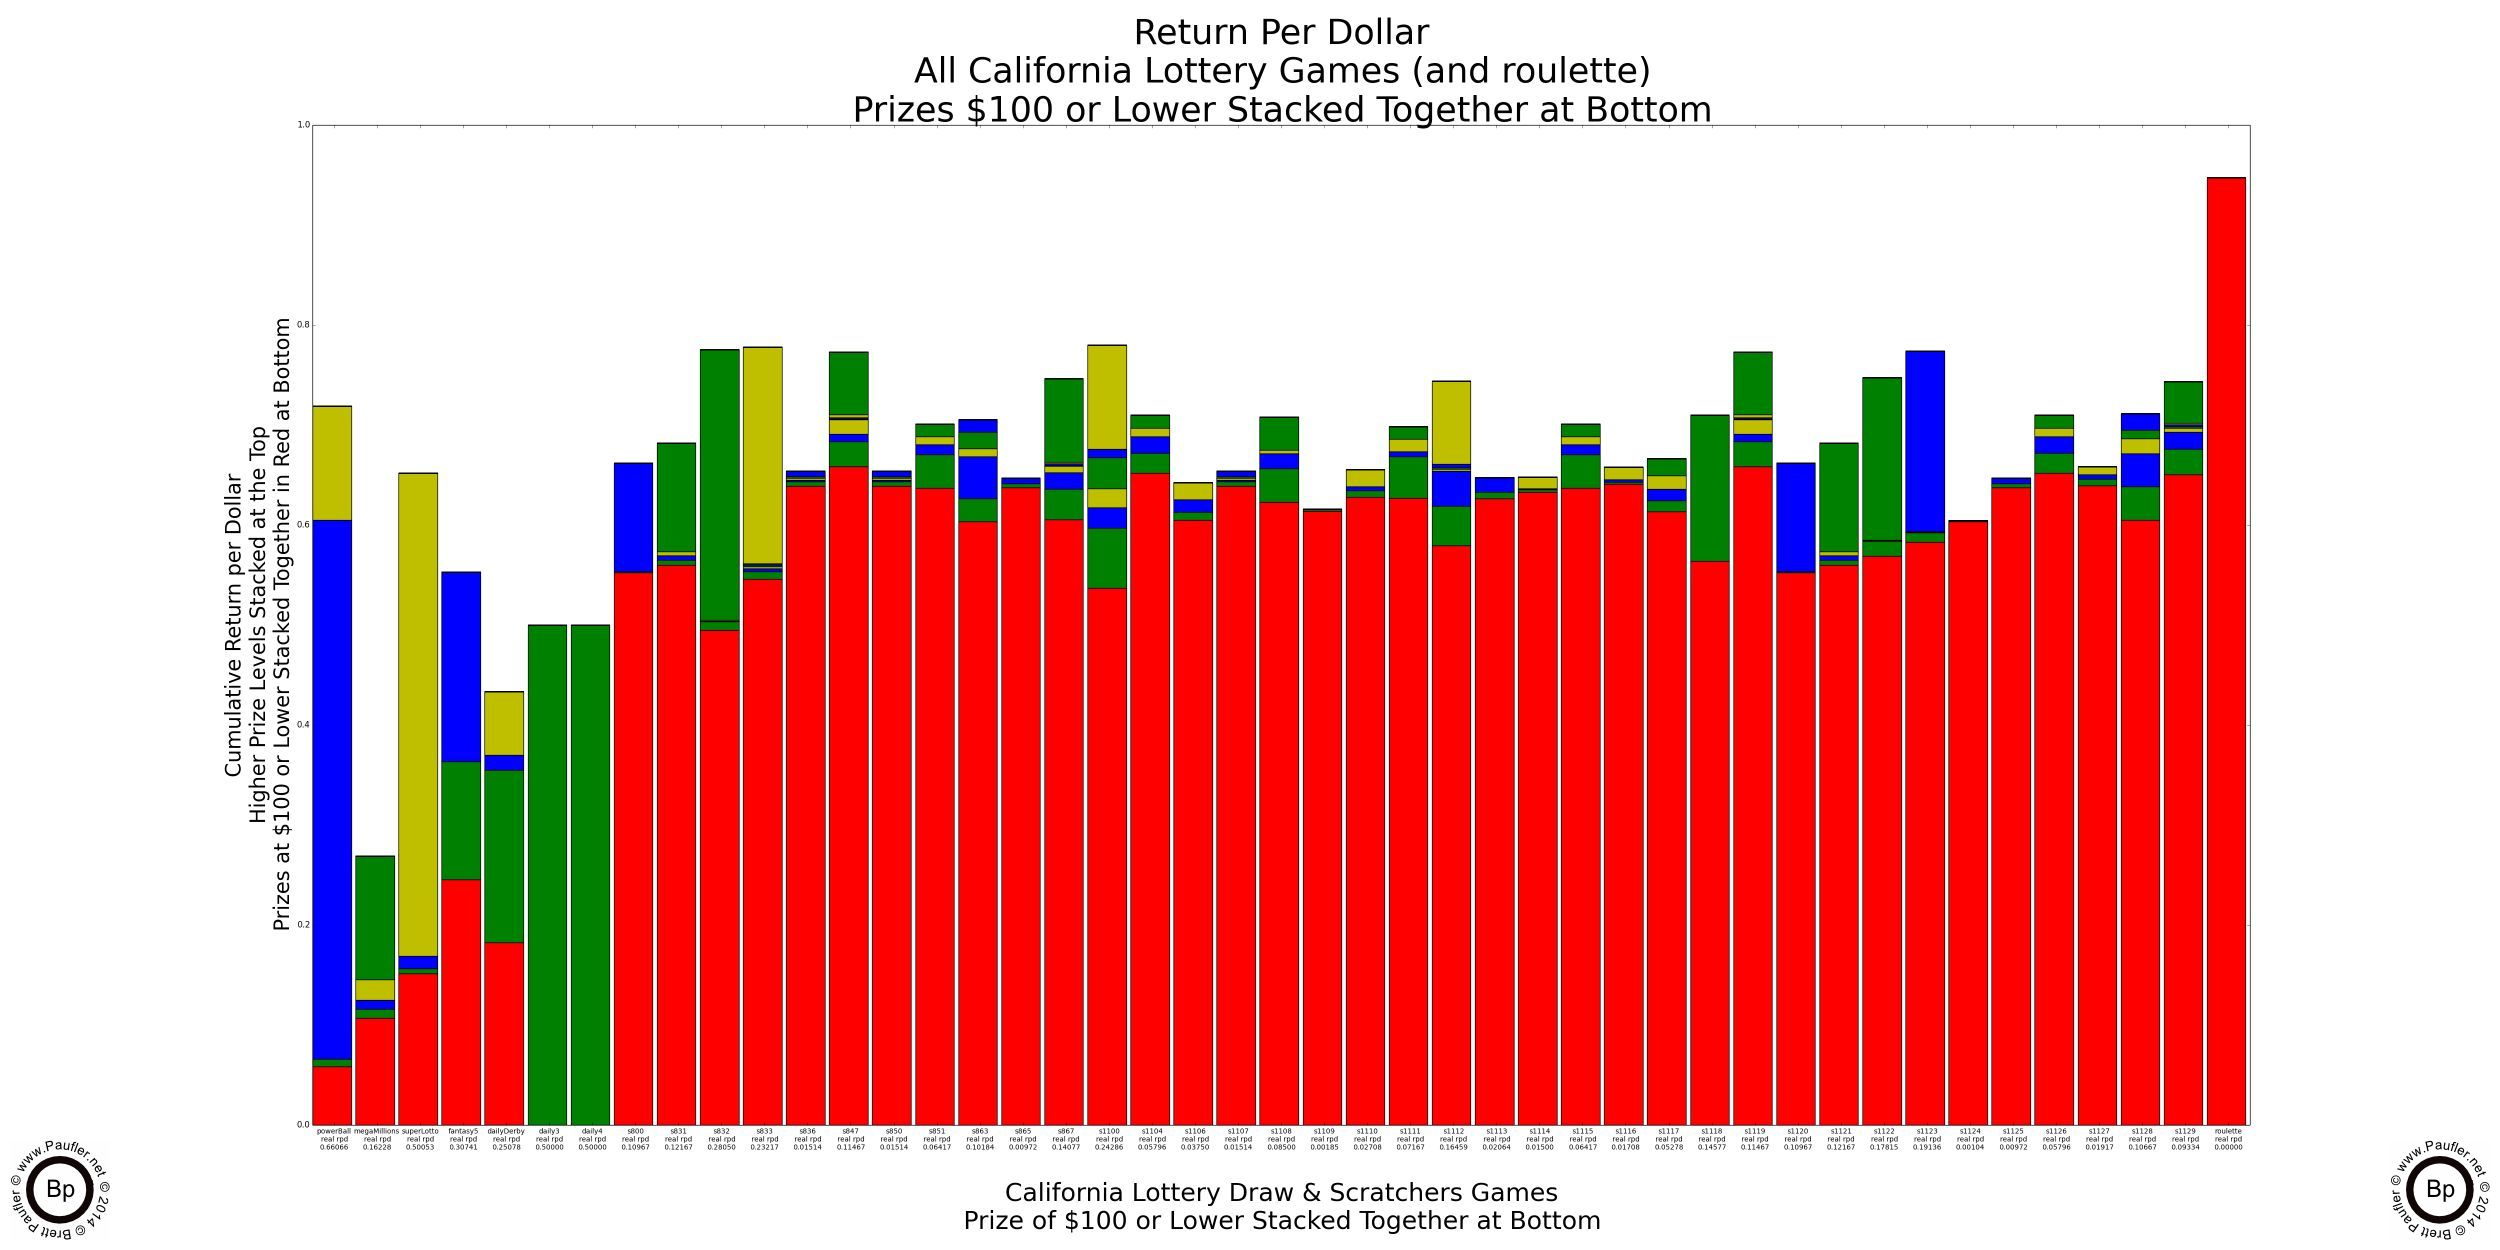 California Lottery Game Play Analysis - May the Best Game Win